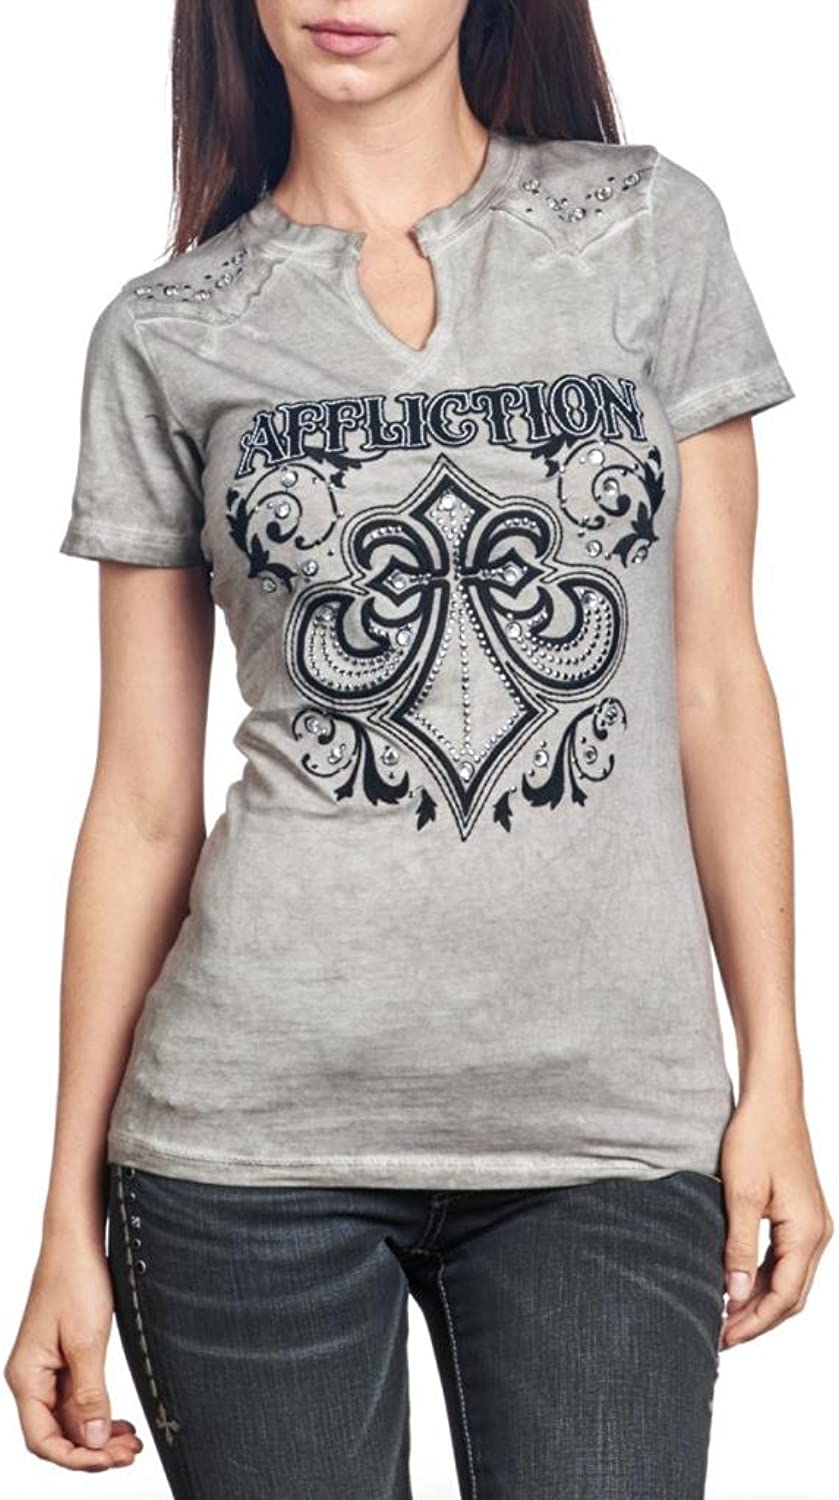 Affliction Women's Short Sleeves Vneck Fleur Rhinestone Tee